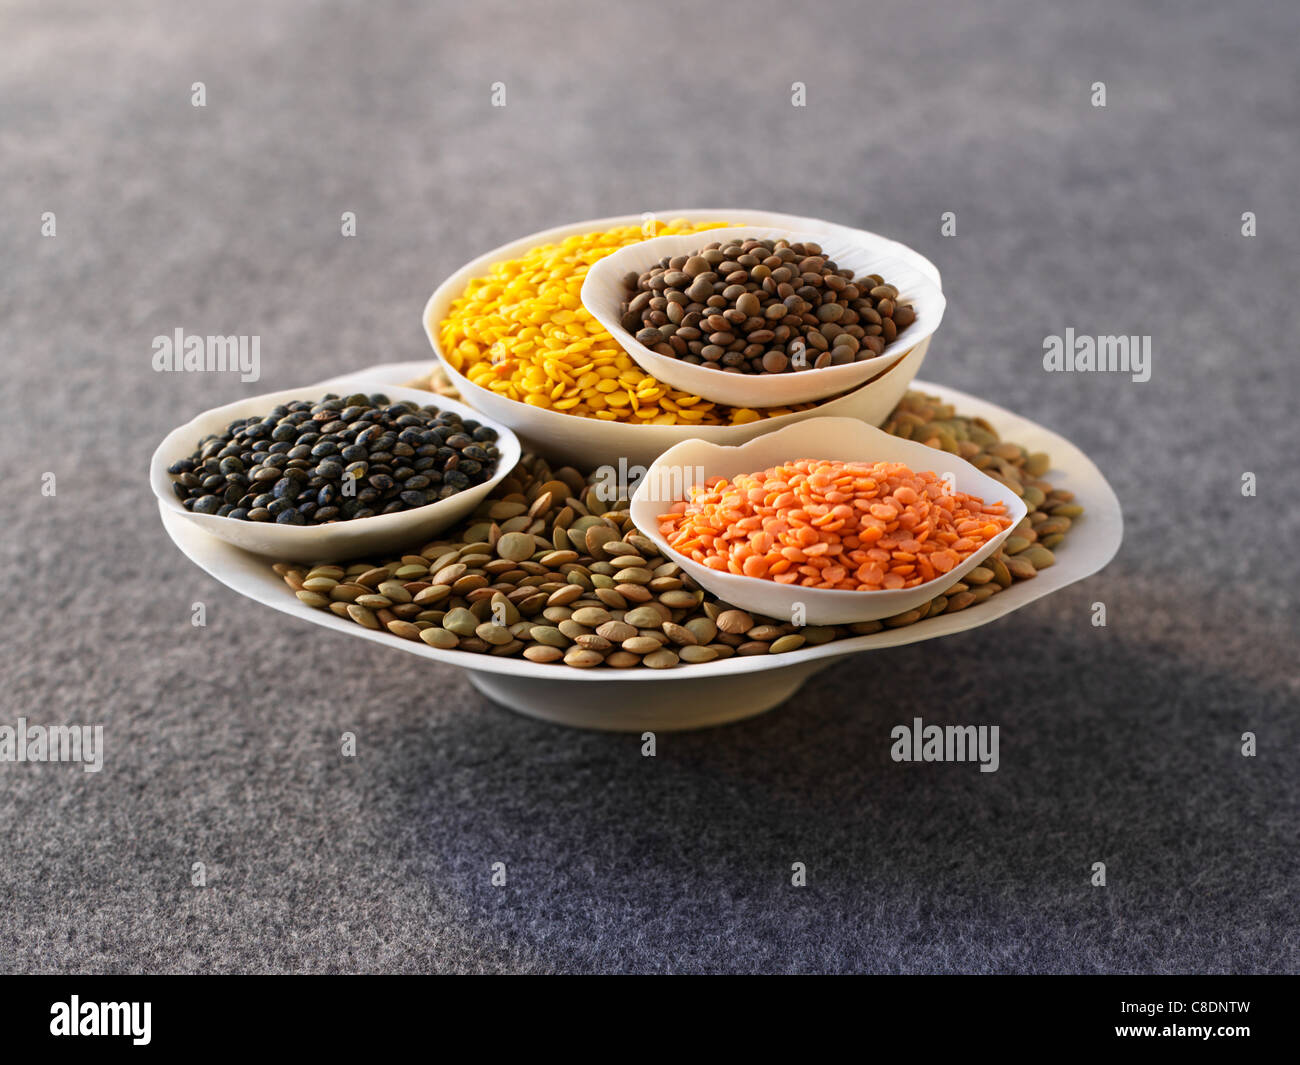 Assorted lentils - Stock Image